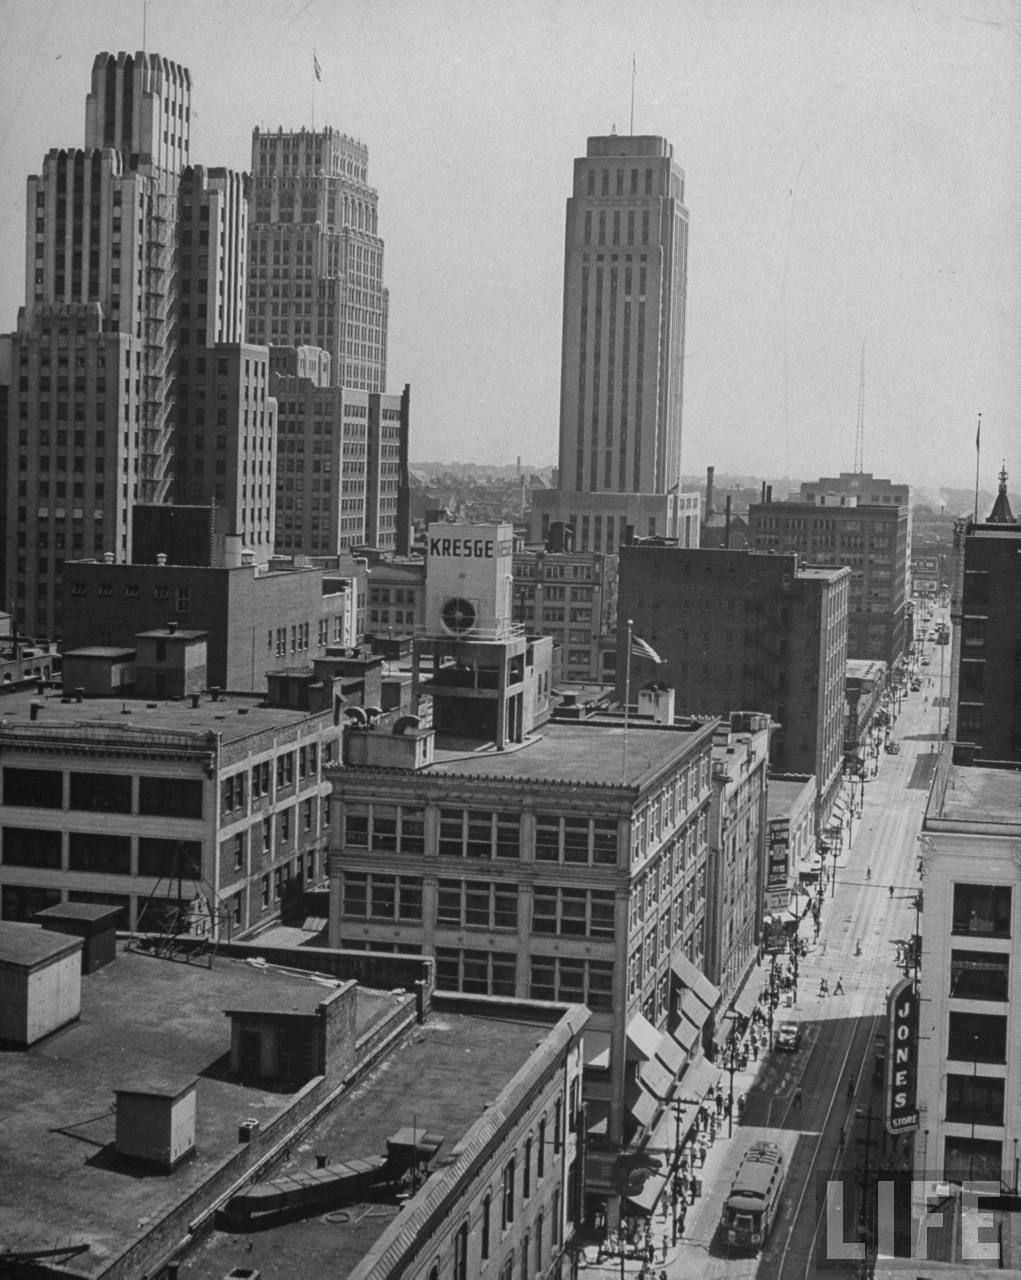 Old Photos Kansas City 1945 With The Russian Accent